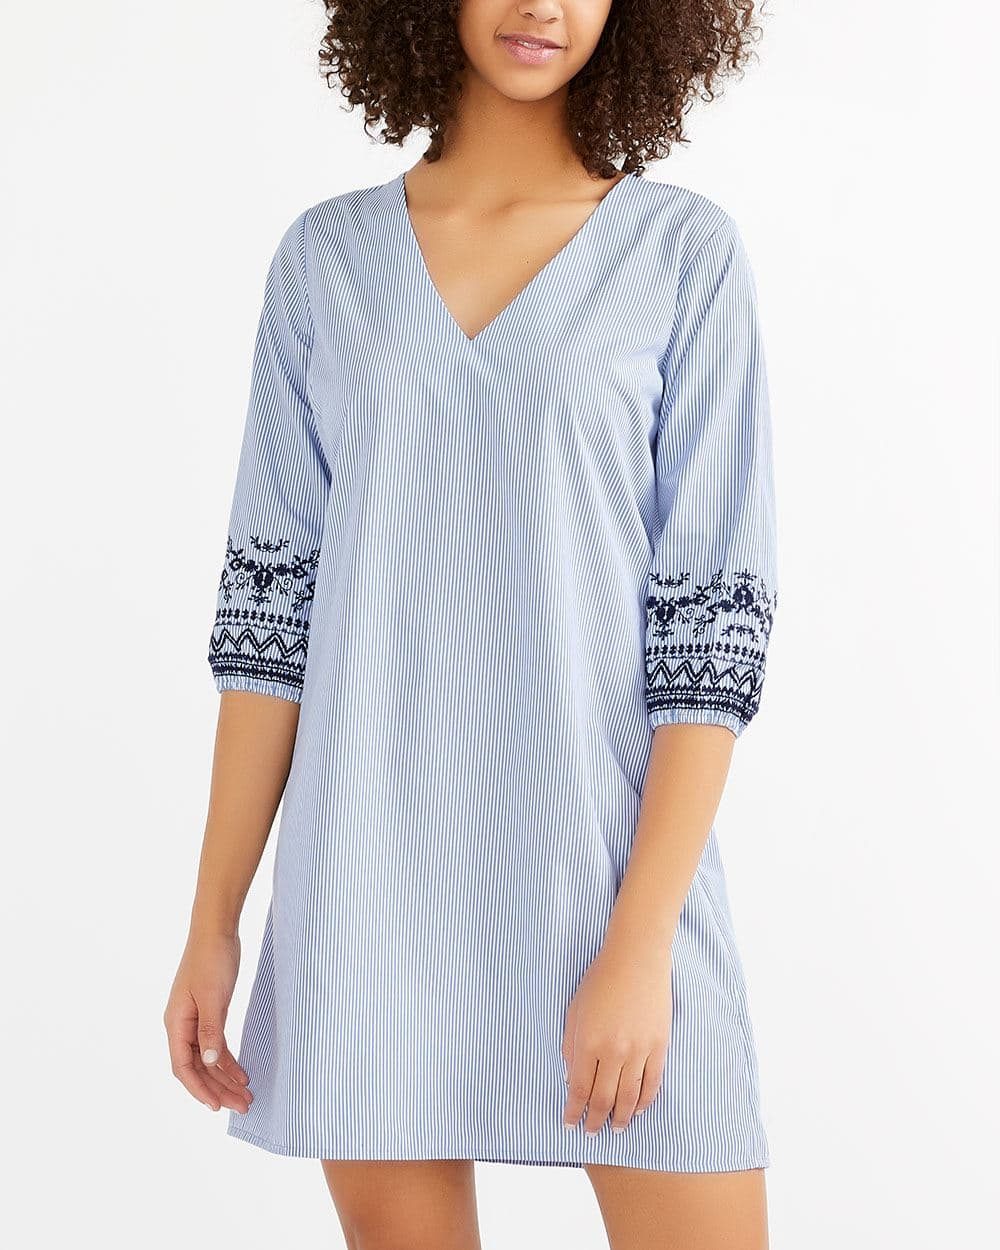 Embroidered ¾ Sleeve Printed Dress